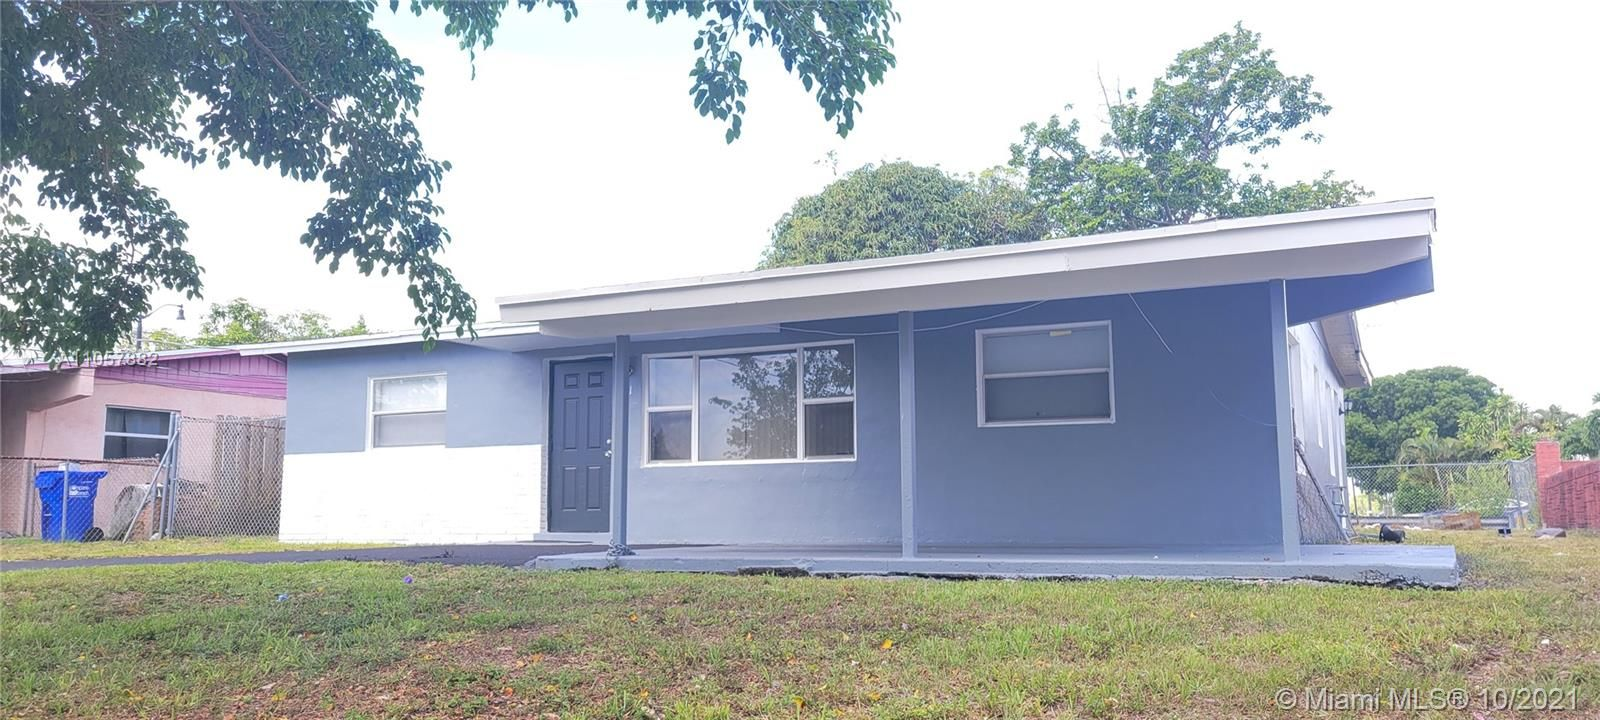 801 NW 23rd Ter